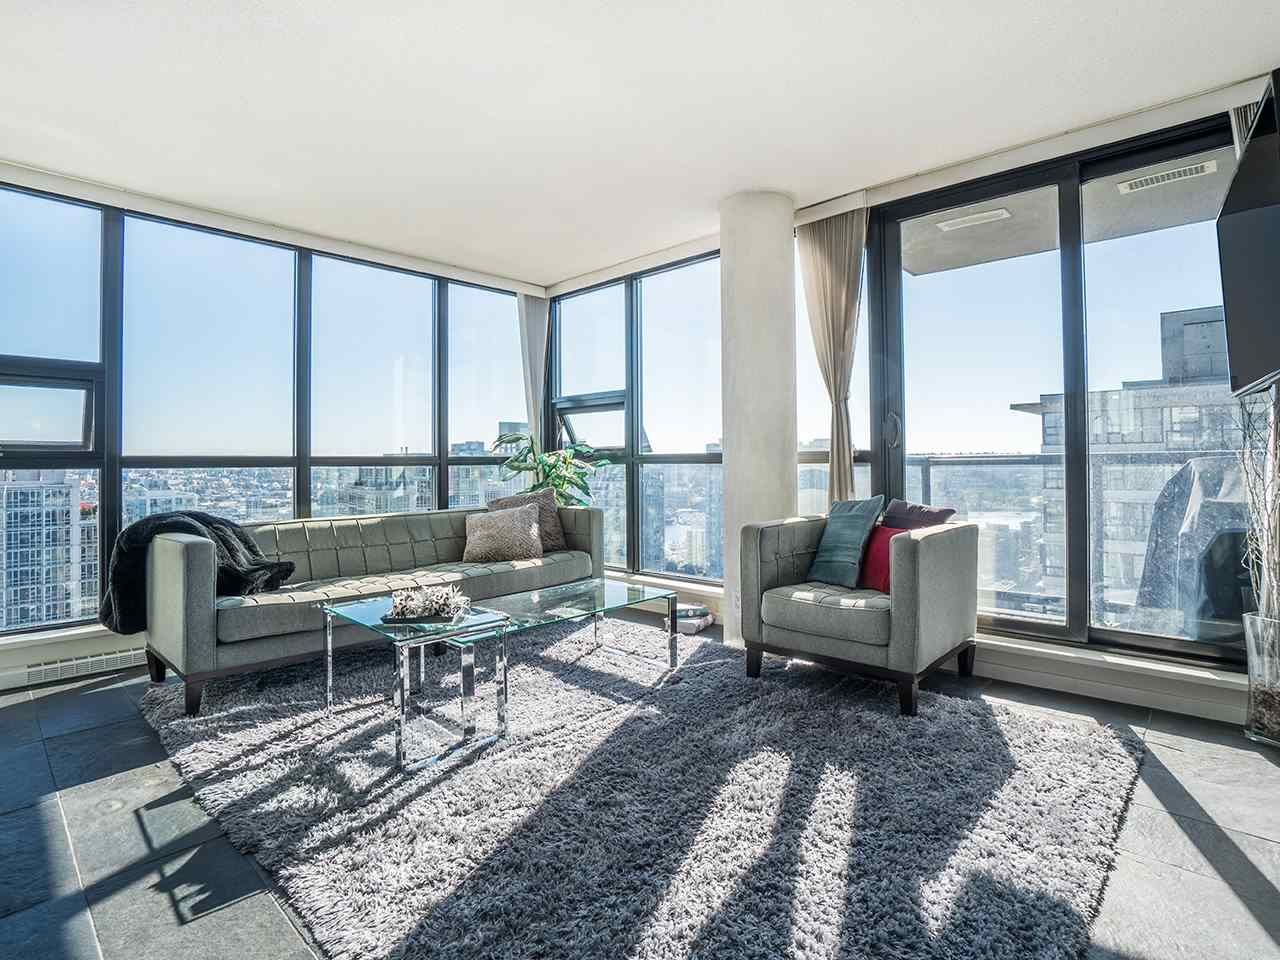 Main Photo: 2903 909 MAINLAND STREET in Vancouver: Yaletown Condo for sale (Vancouver West)  : MLS®# R2213017